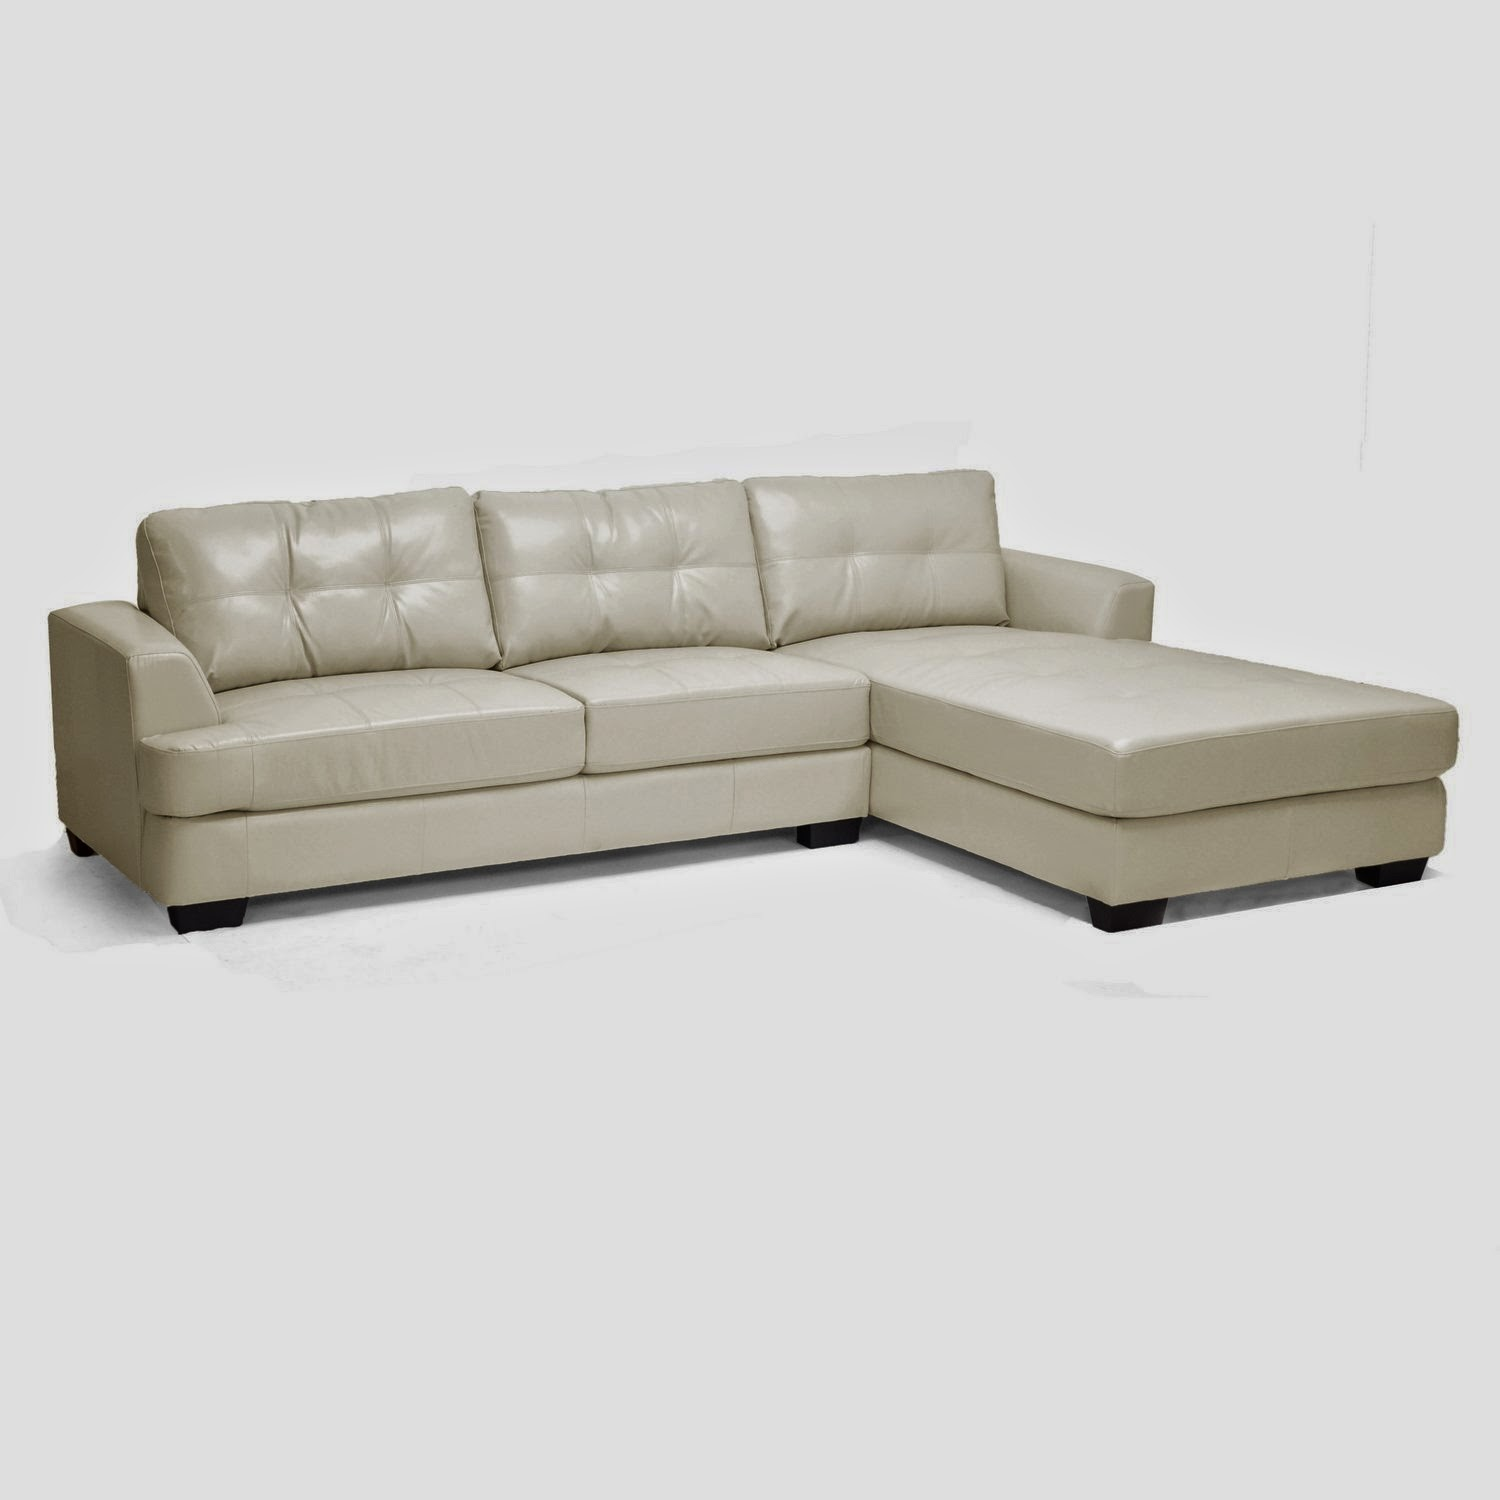 Couch with chaise leather couch with chaise lounge for Chaise leather lounge